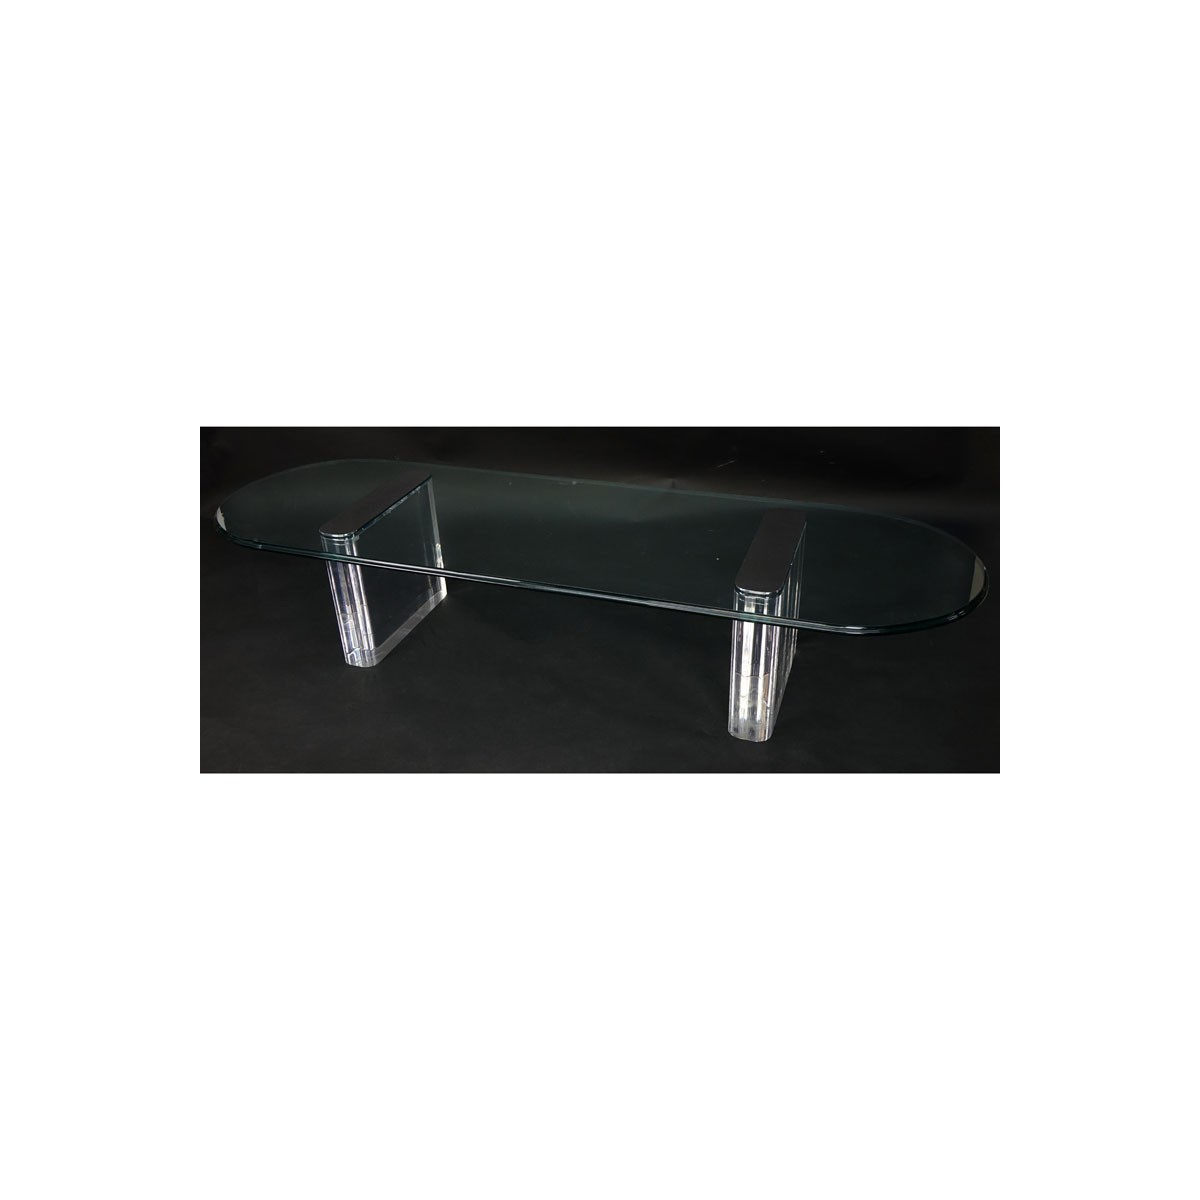 Vintage Lucite, Chrome and Glass Coffee Table Attributed to Pace. Good condition. Measures 15-1/4""